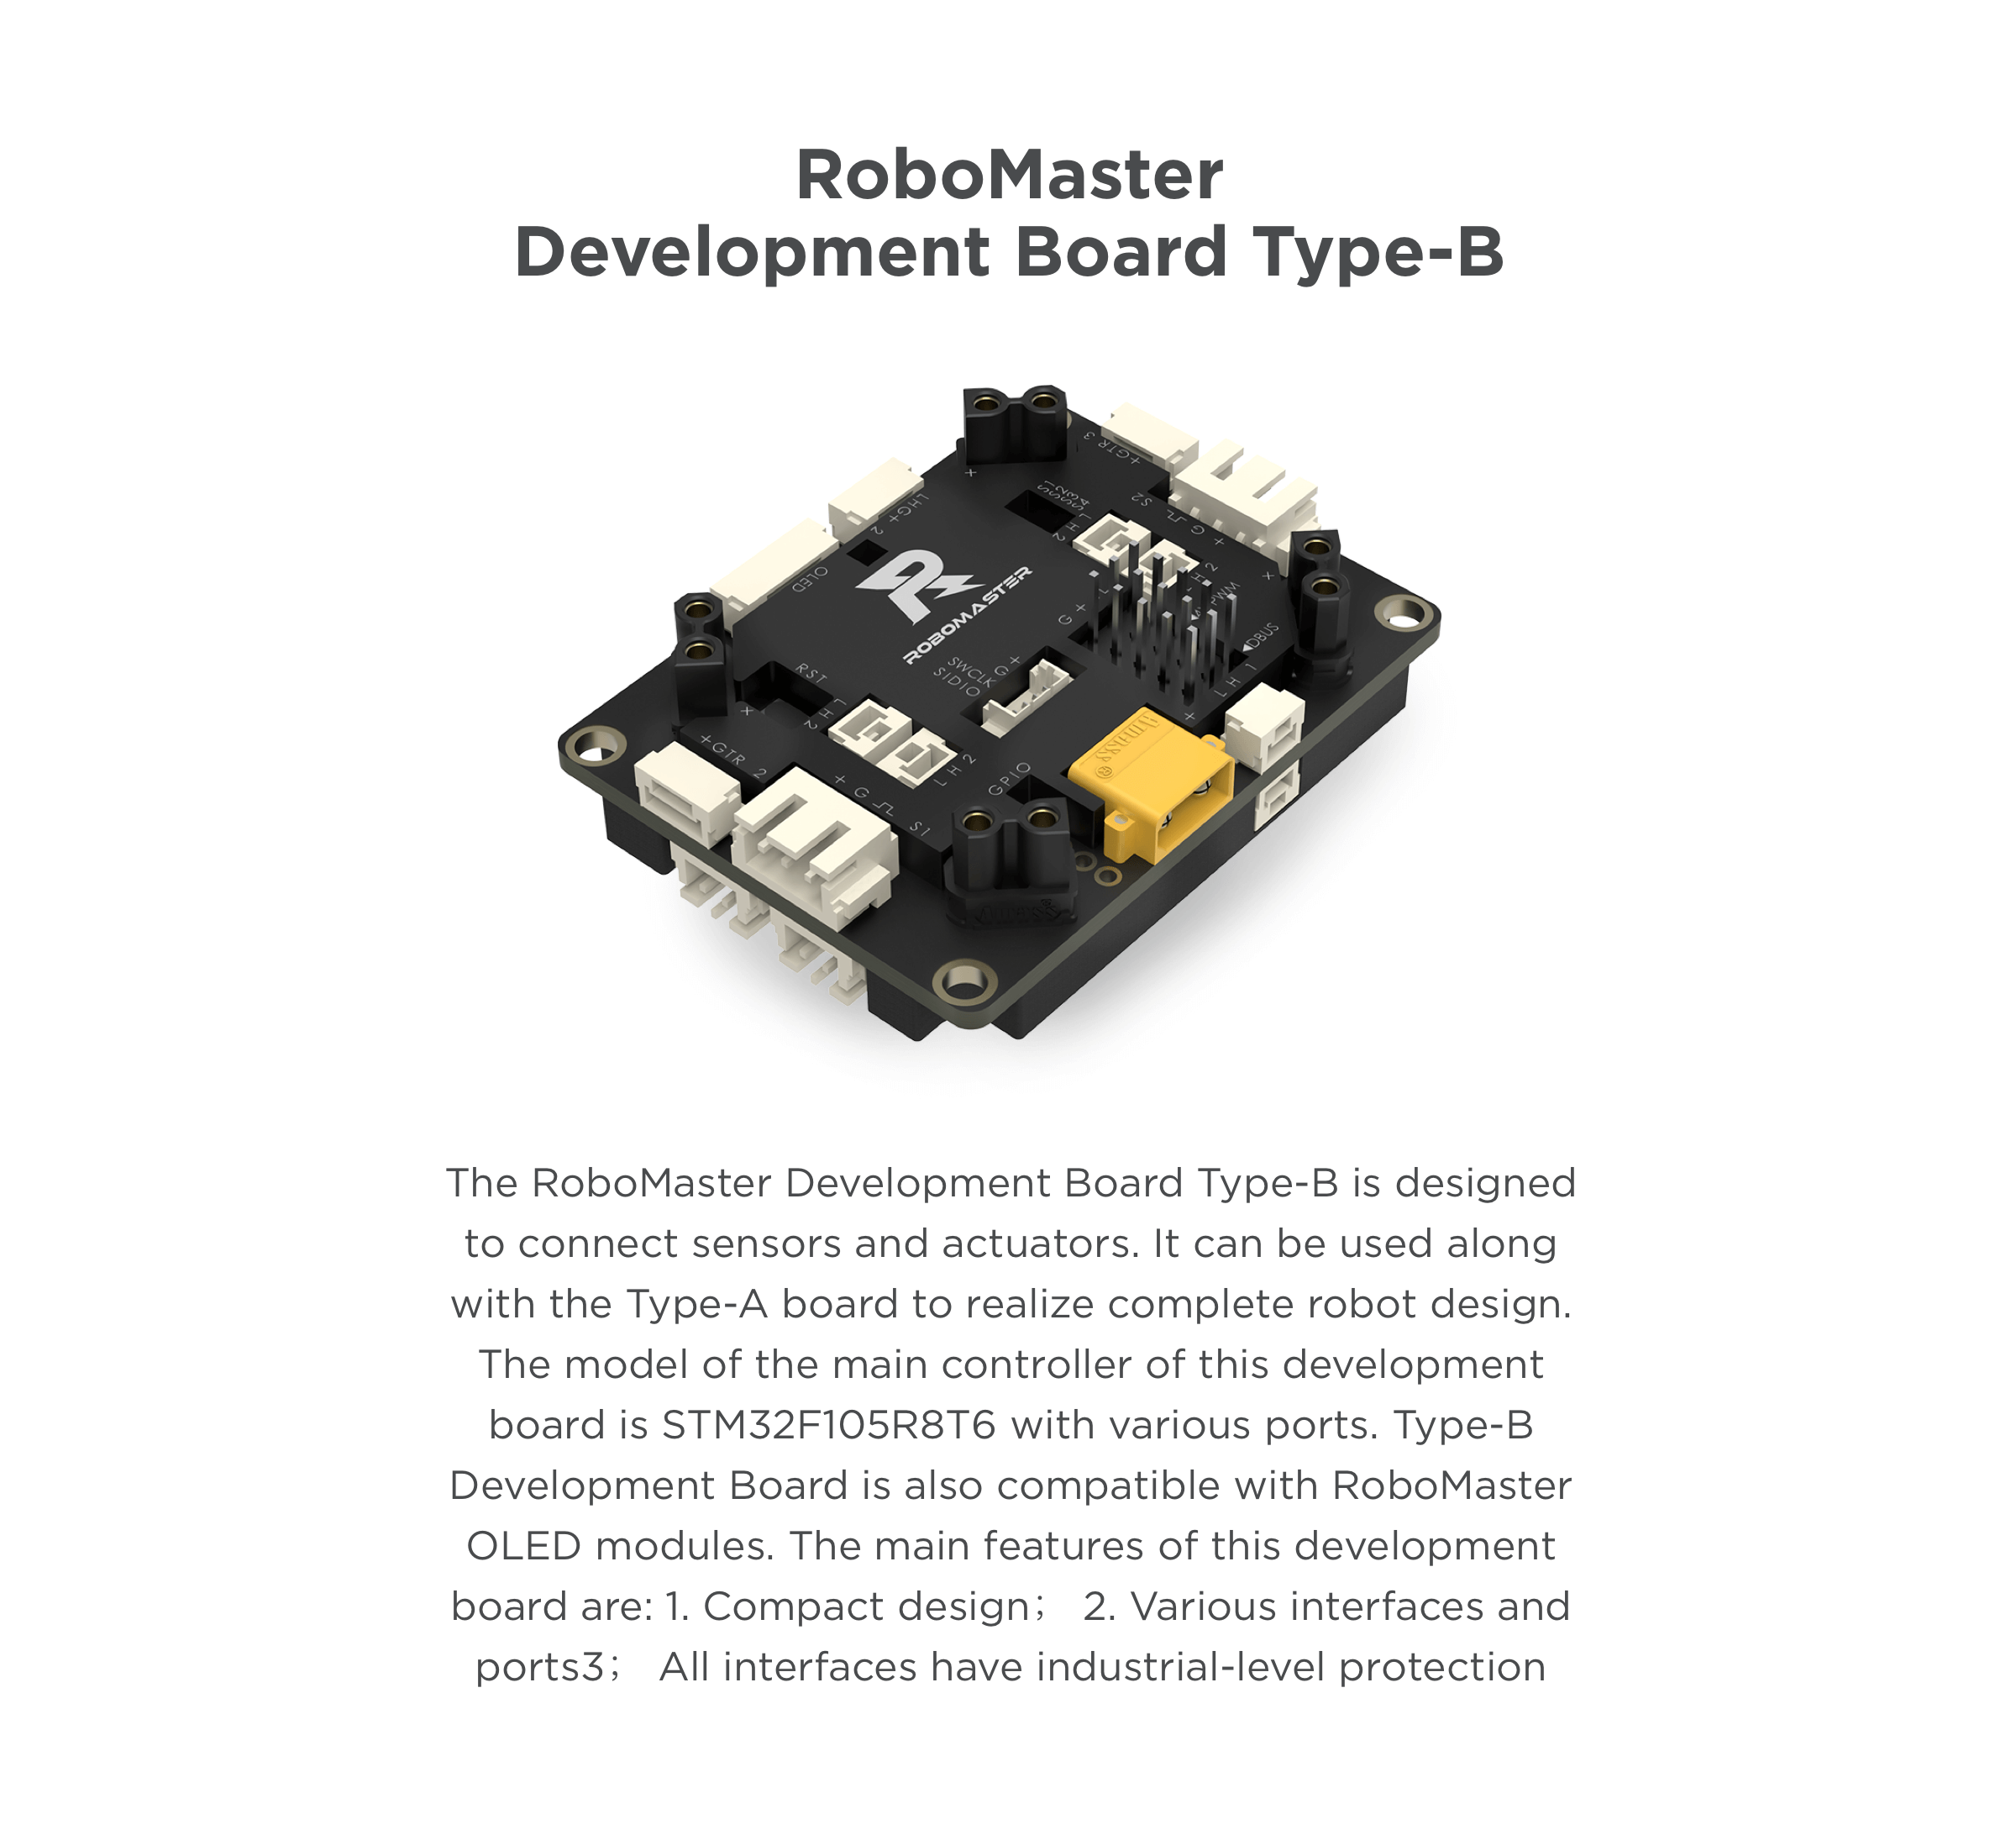 Development Board Type-B